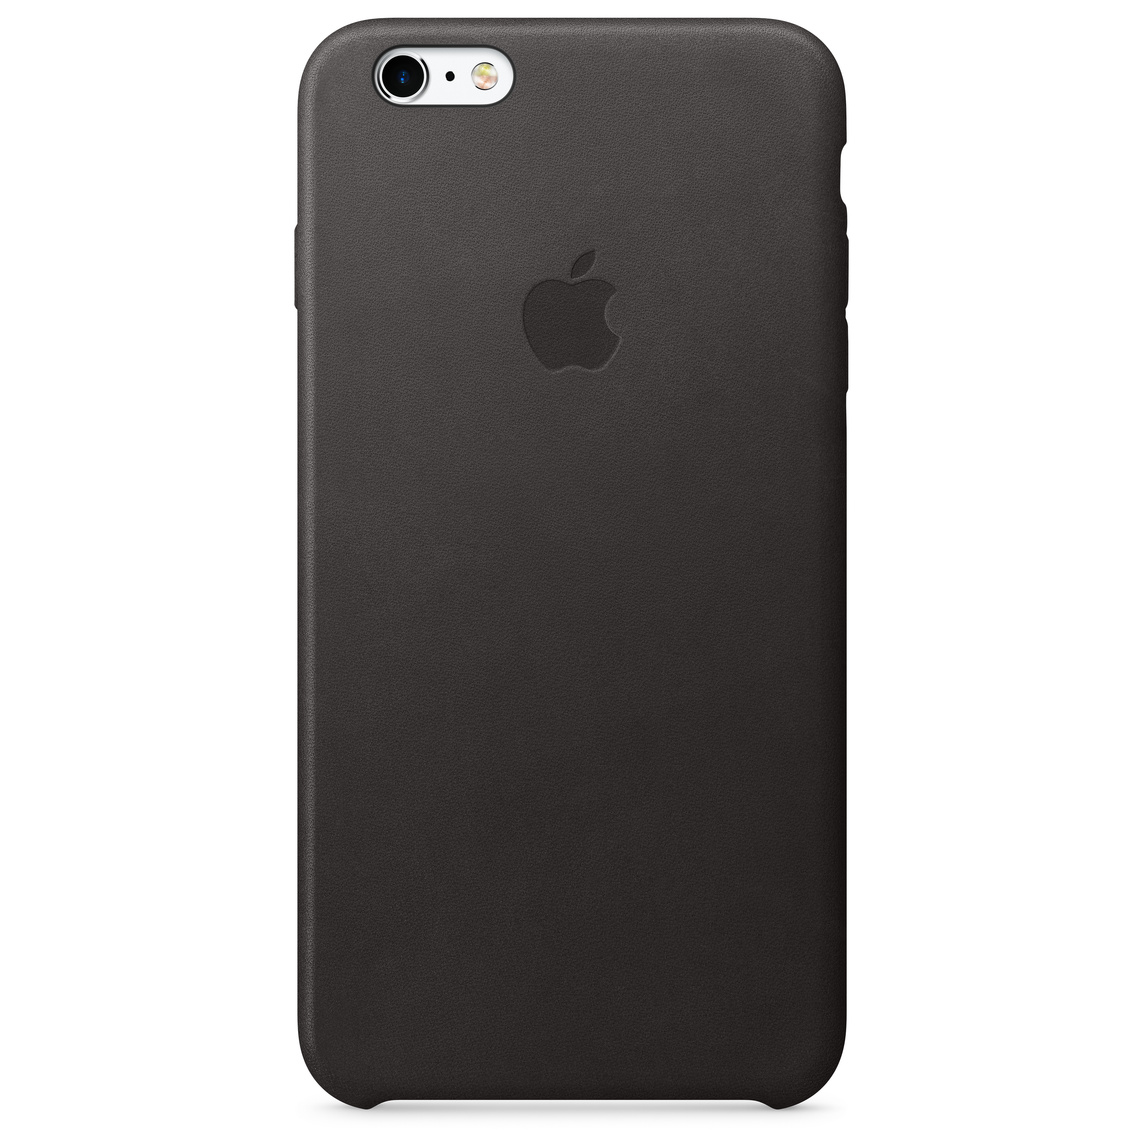 outlet store sale cbabd 660df iPhone 6 Plus / 6s Plus Leather Case - Black